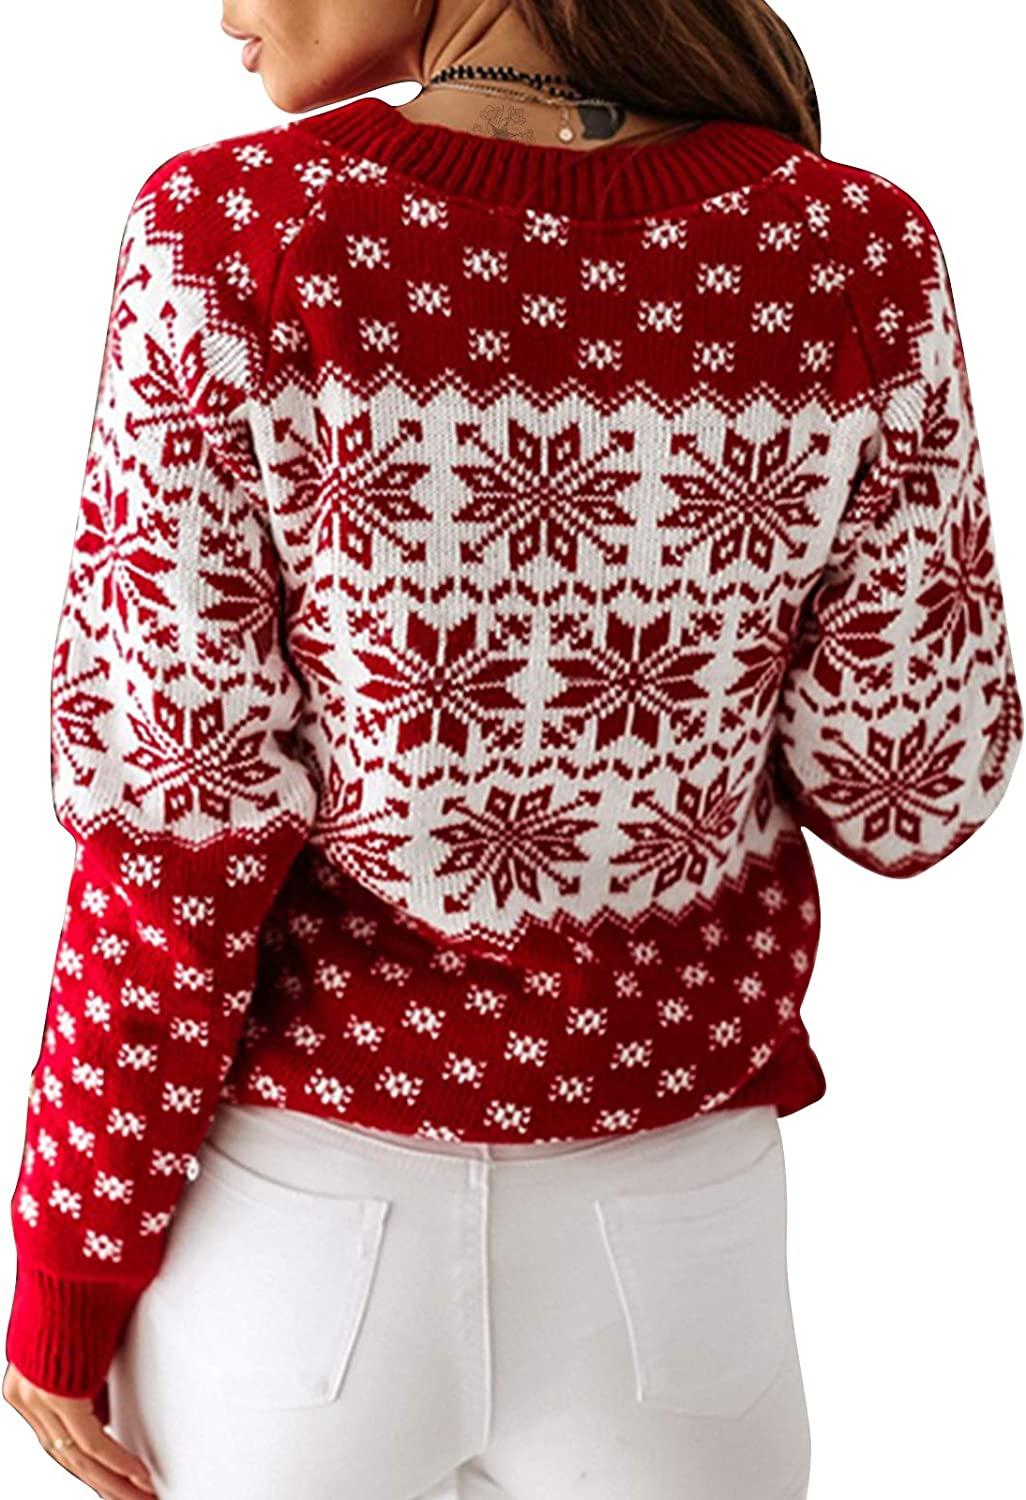 Exlura Sales for sale Patterns Reindeer Ugly Long Beach Mall Cardiga Sweater Christmas Pullover